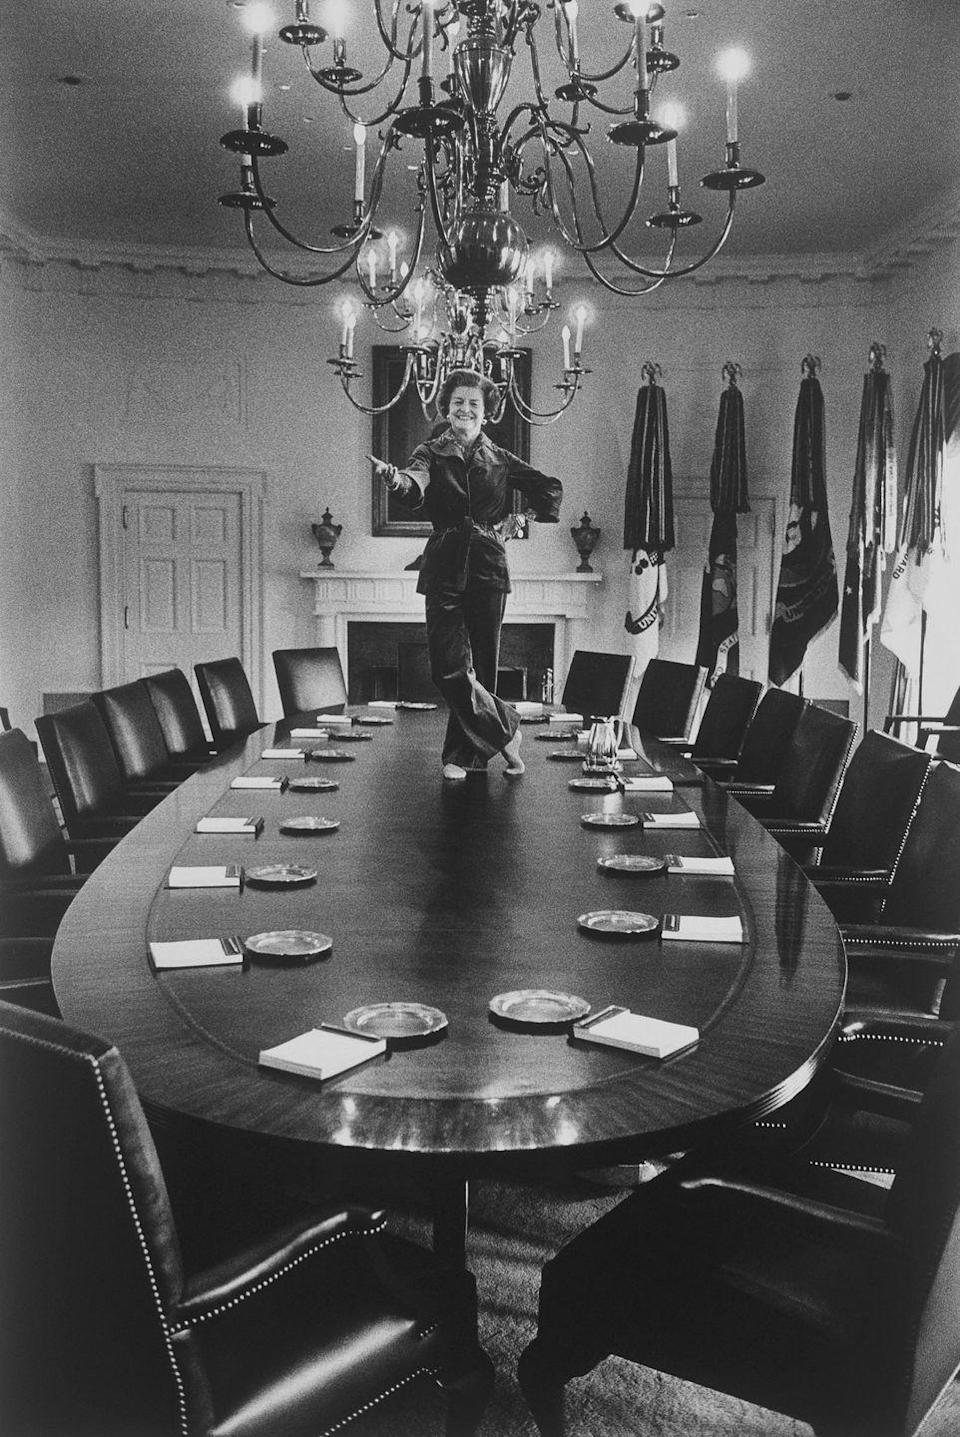 <p>File under: iconic first lady moments. Betty Ford made waves not only when she was captured on top of the presidential cabinet table, but also as one of the first women to don a pantsuit. </p>